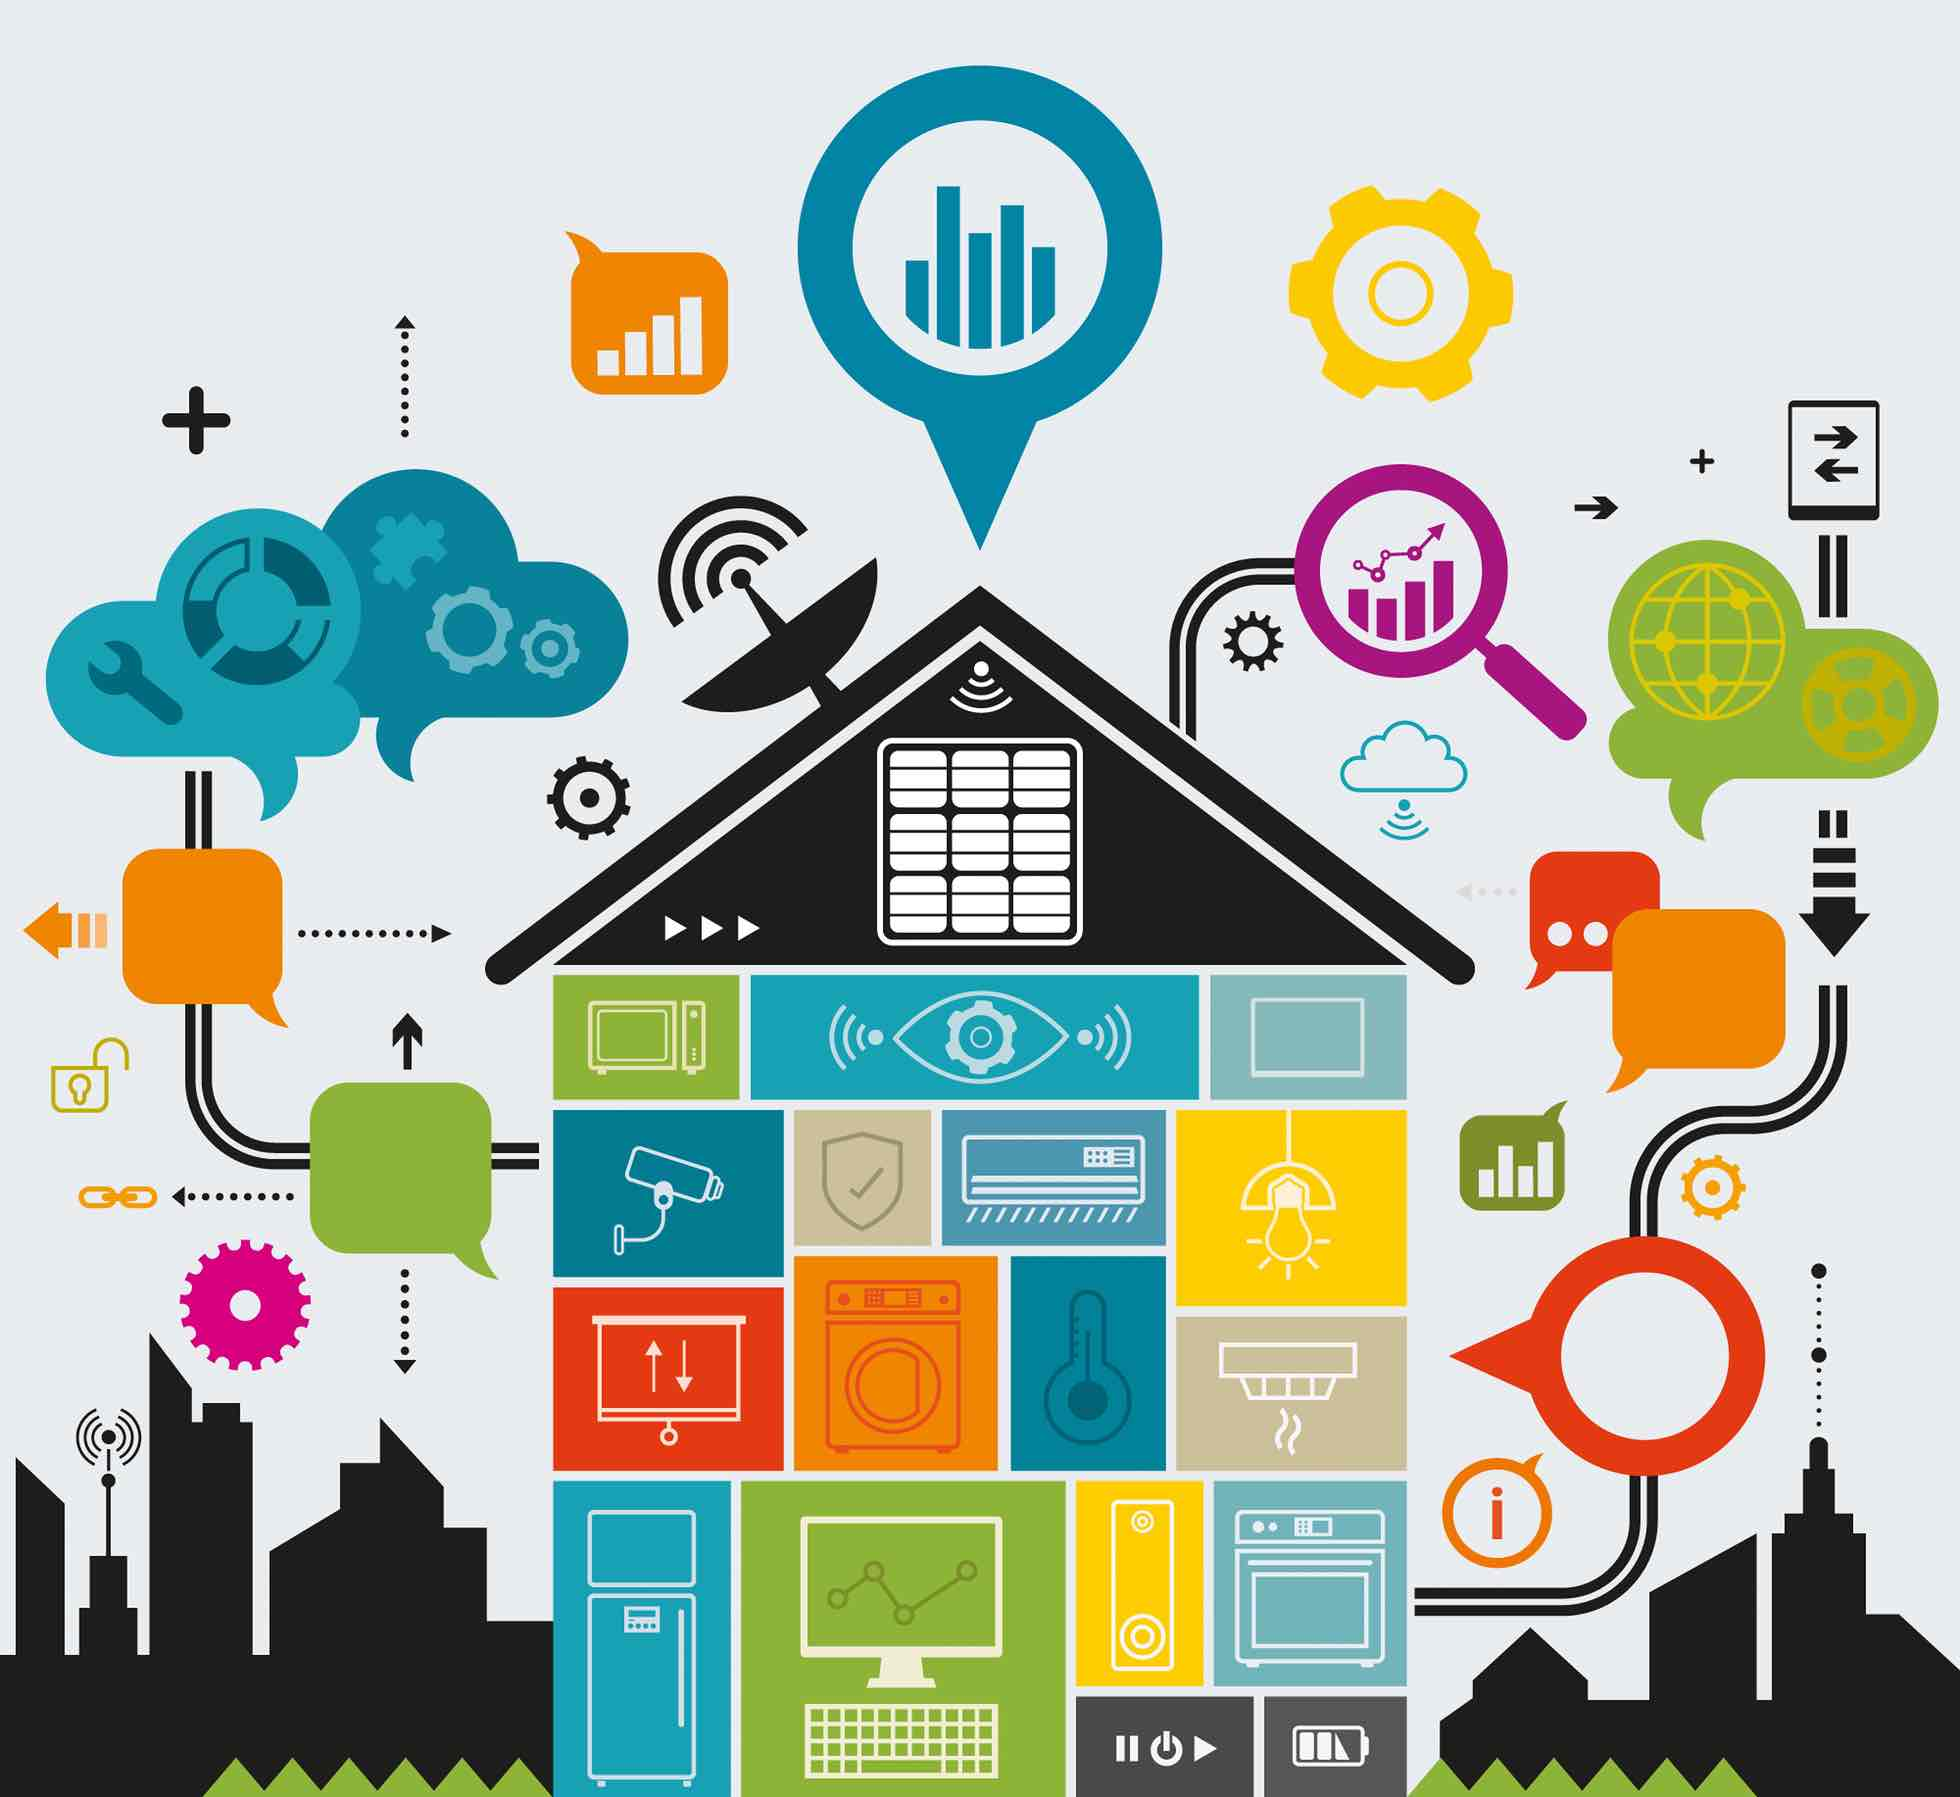 What S Next For Iot In